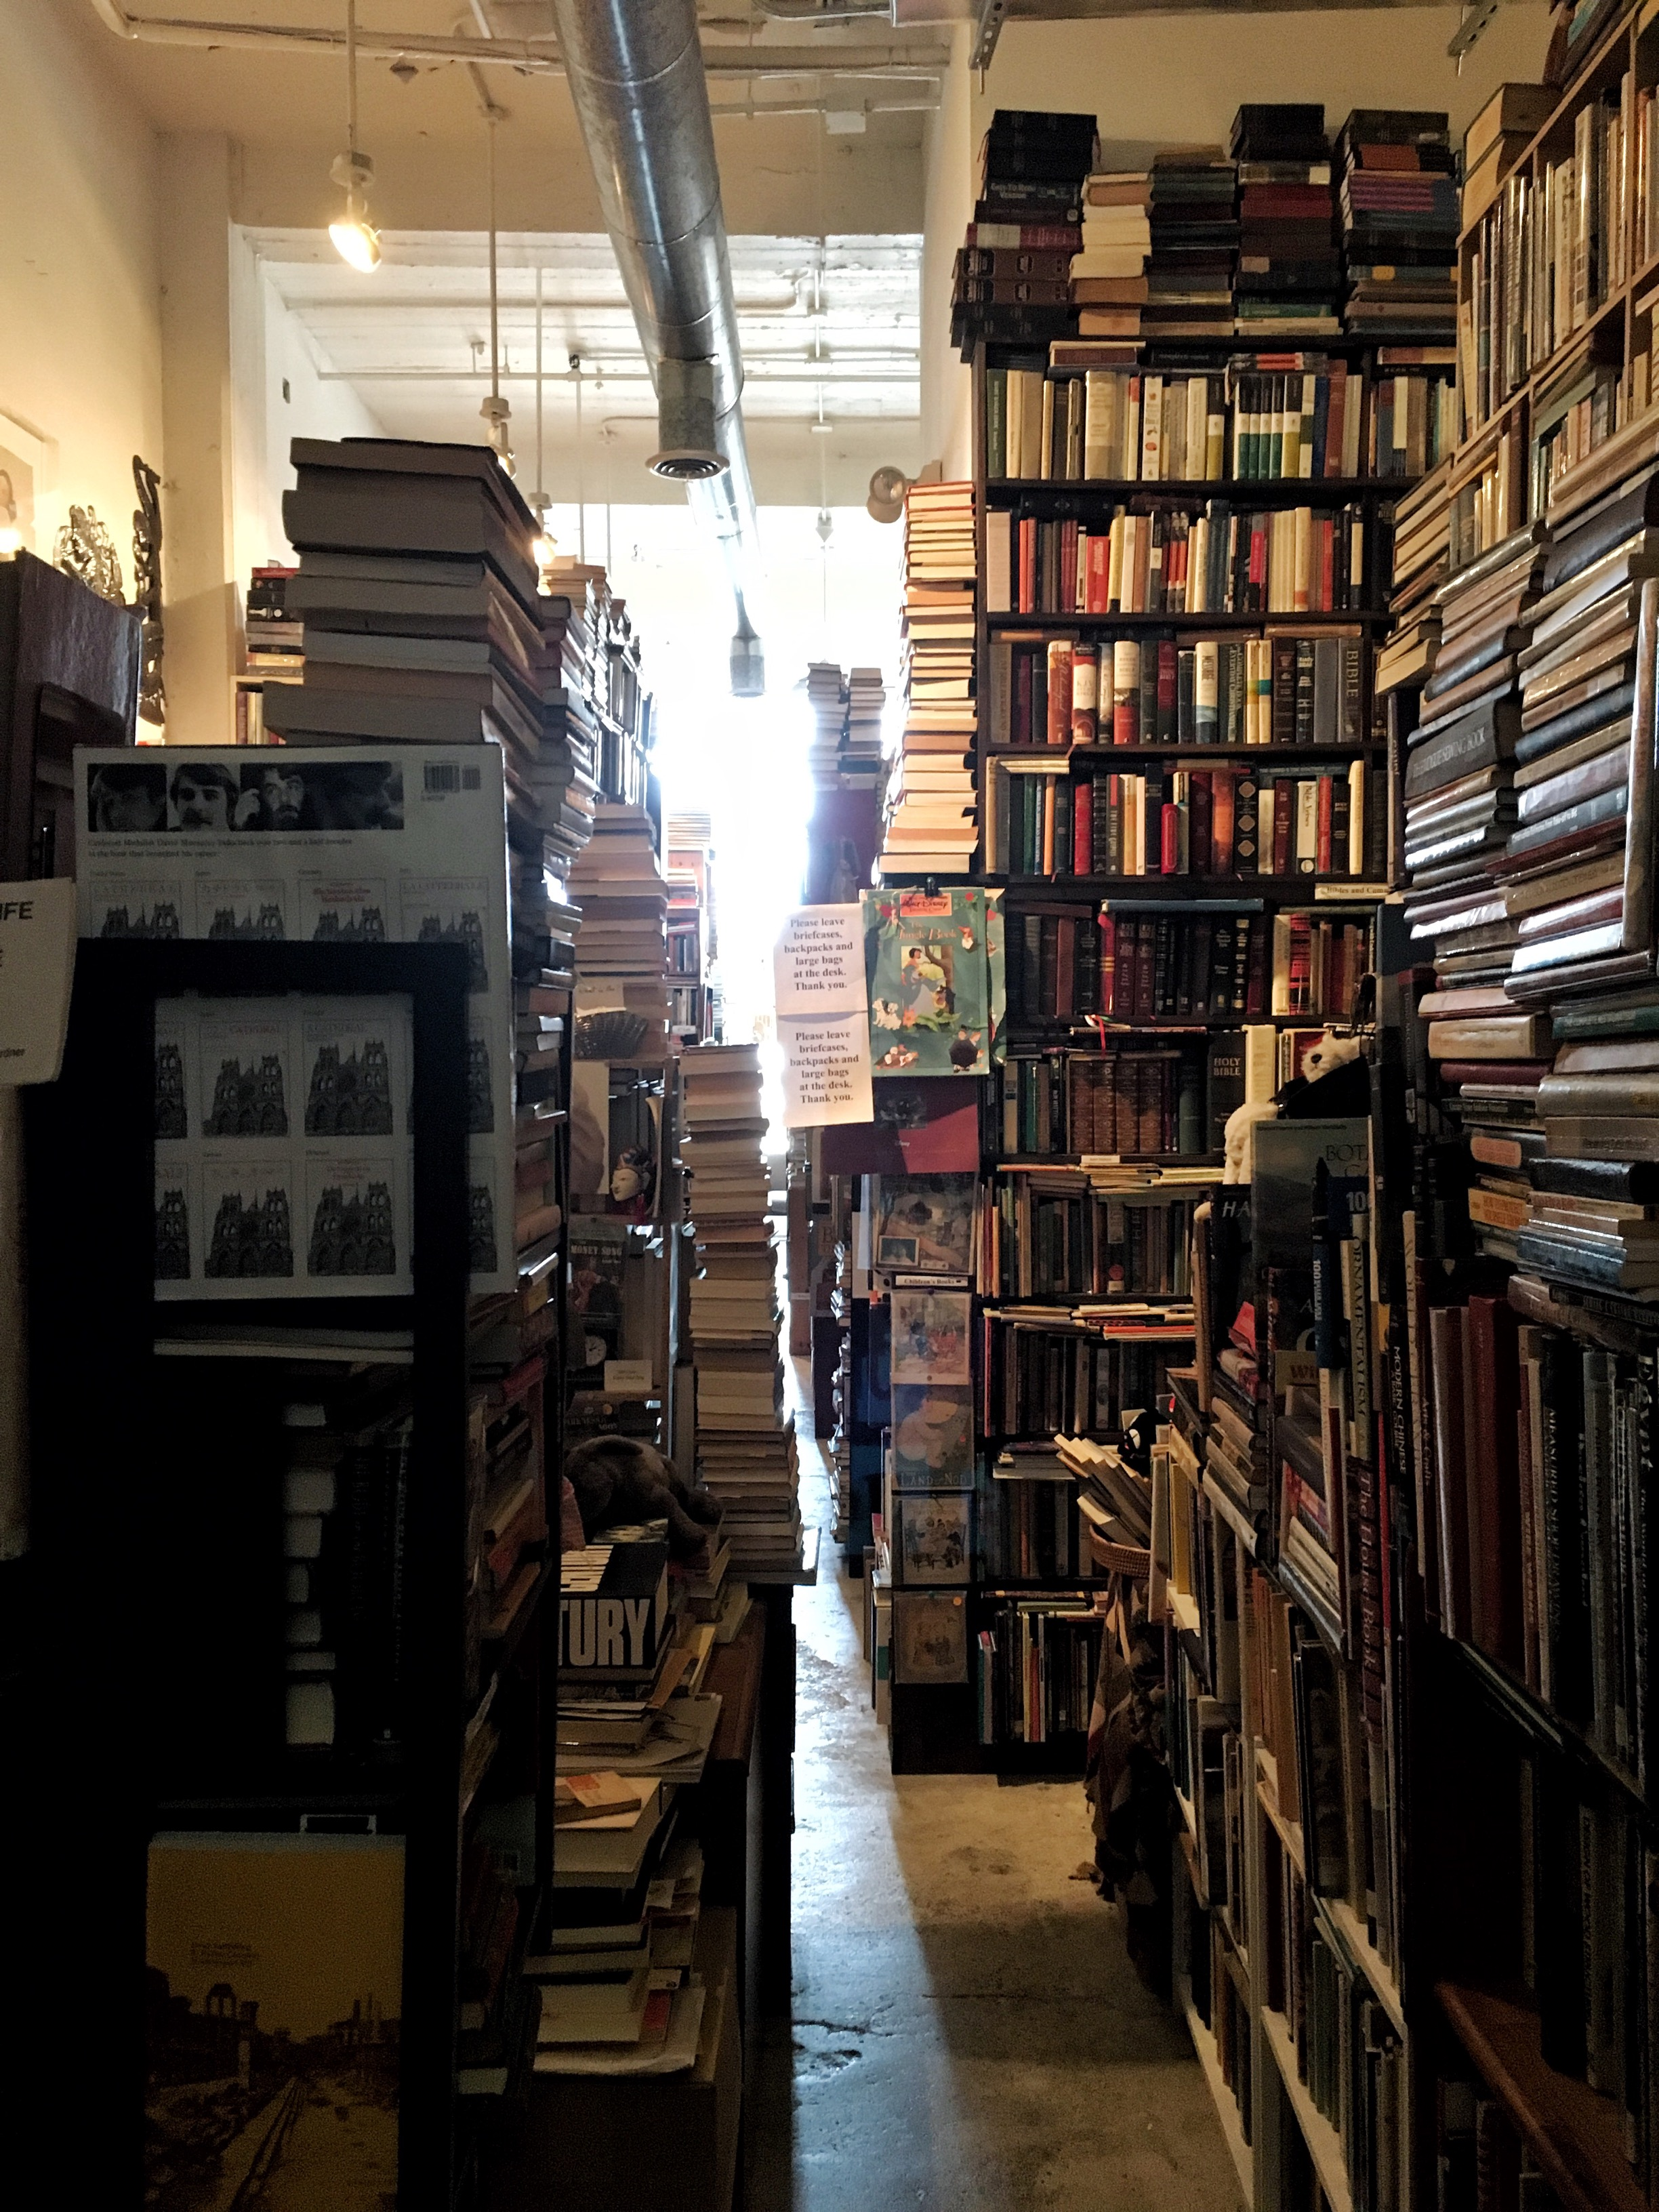 And a book store with objectively too many books in it.